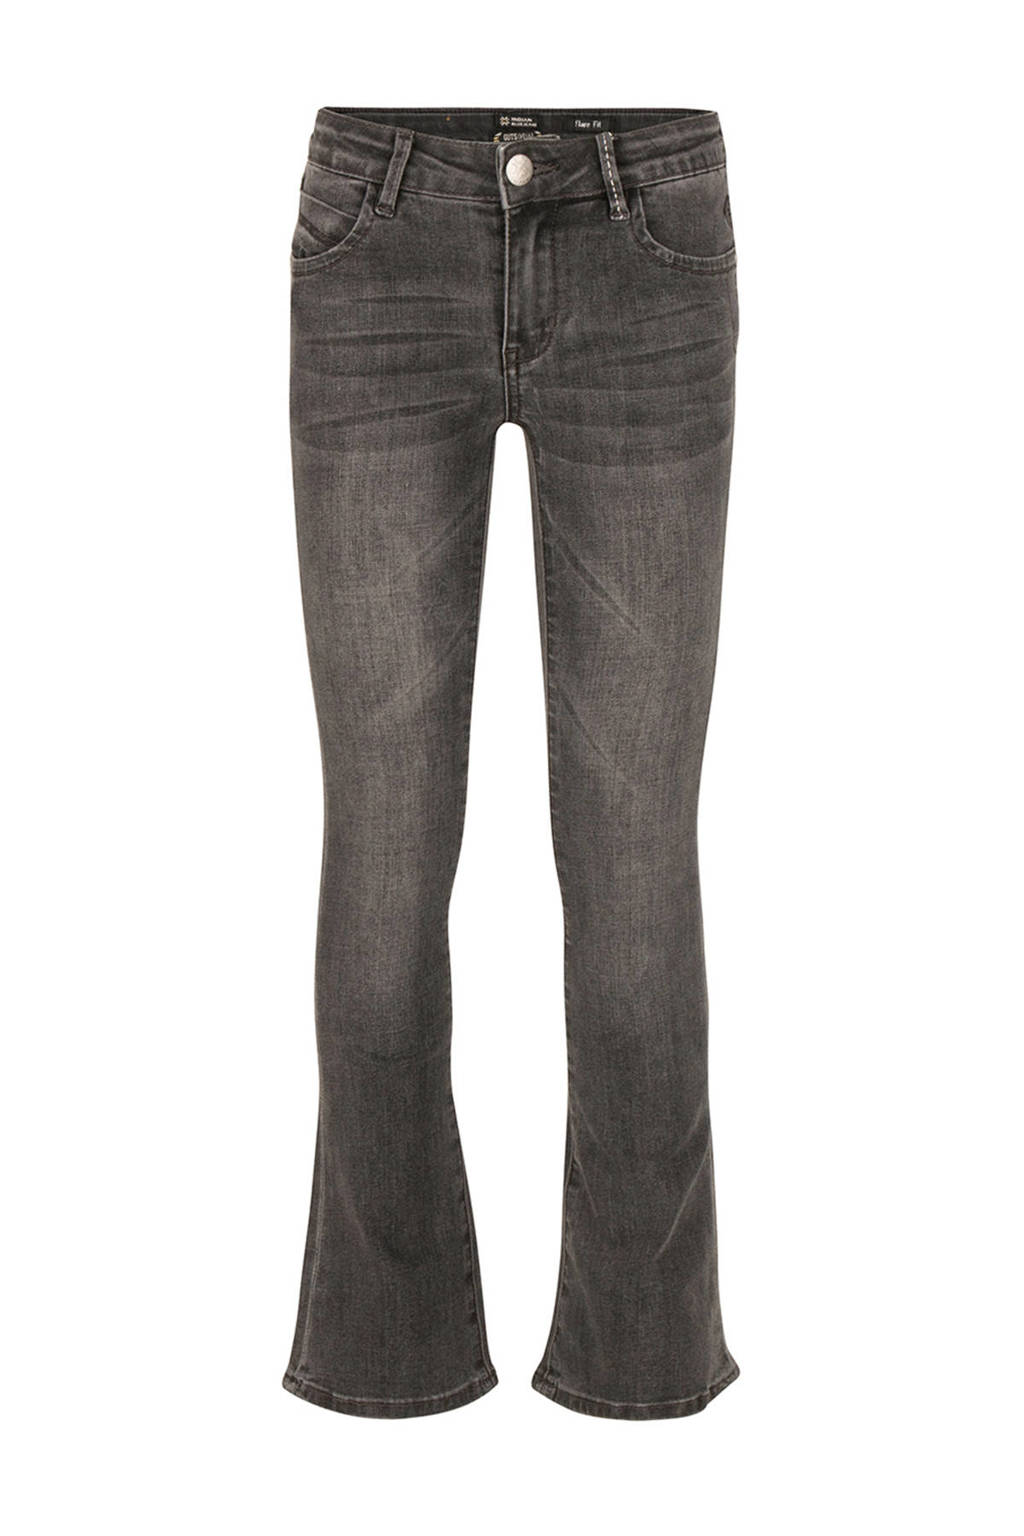 Indian Blue Jeans flared jeans Lola donkergrijs, Donkergrijs